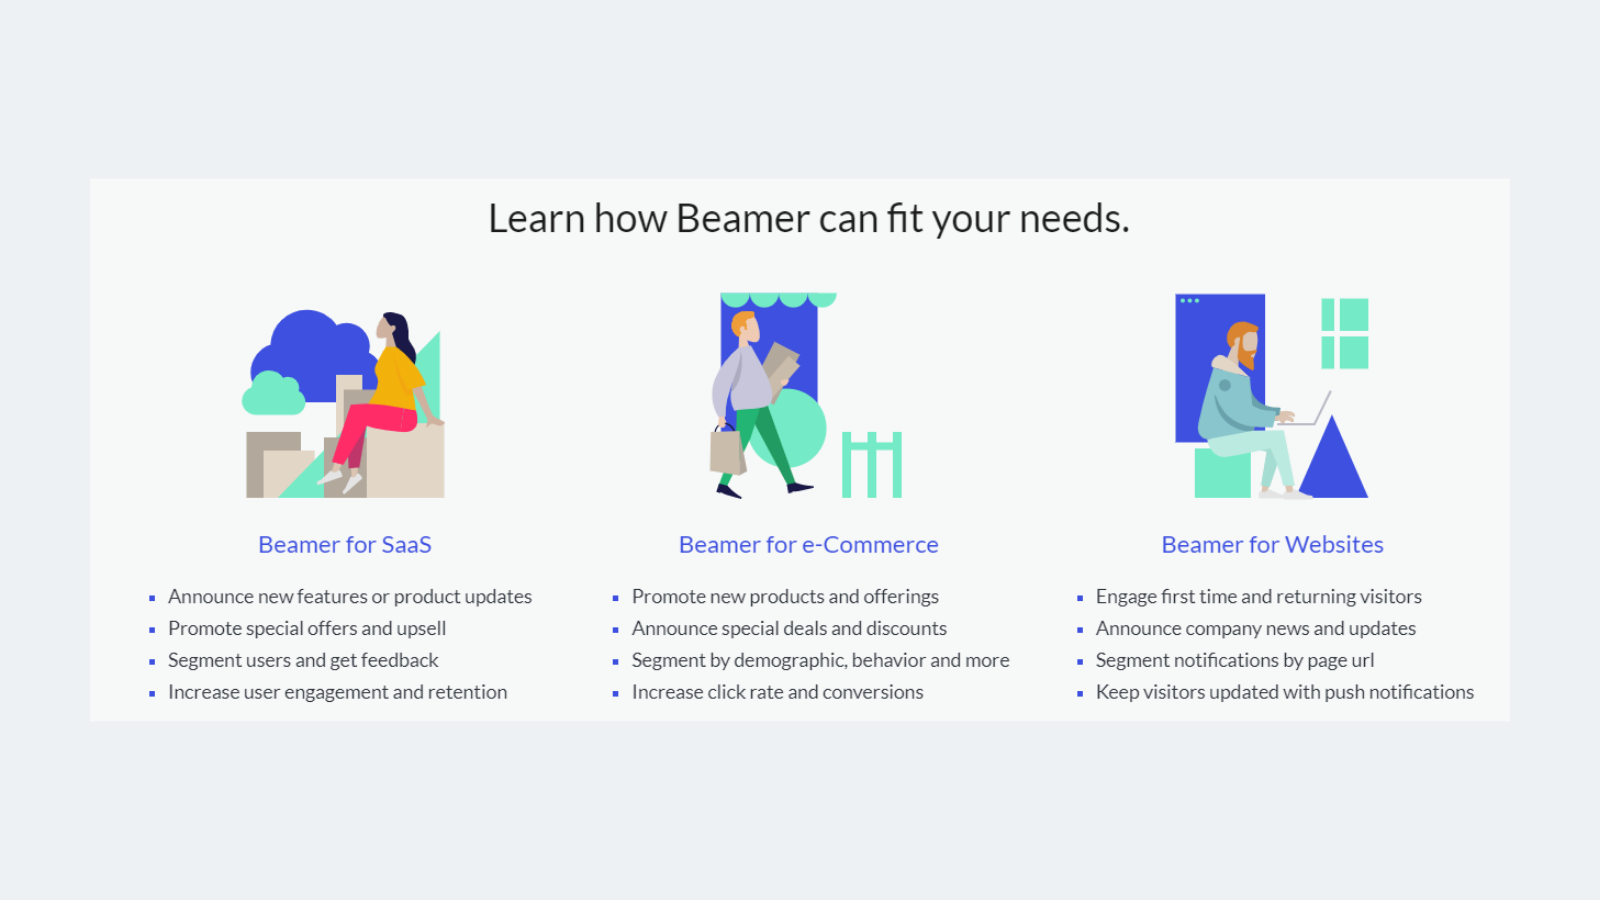 How to create personas for marketing